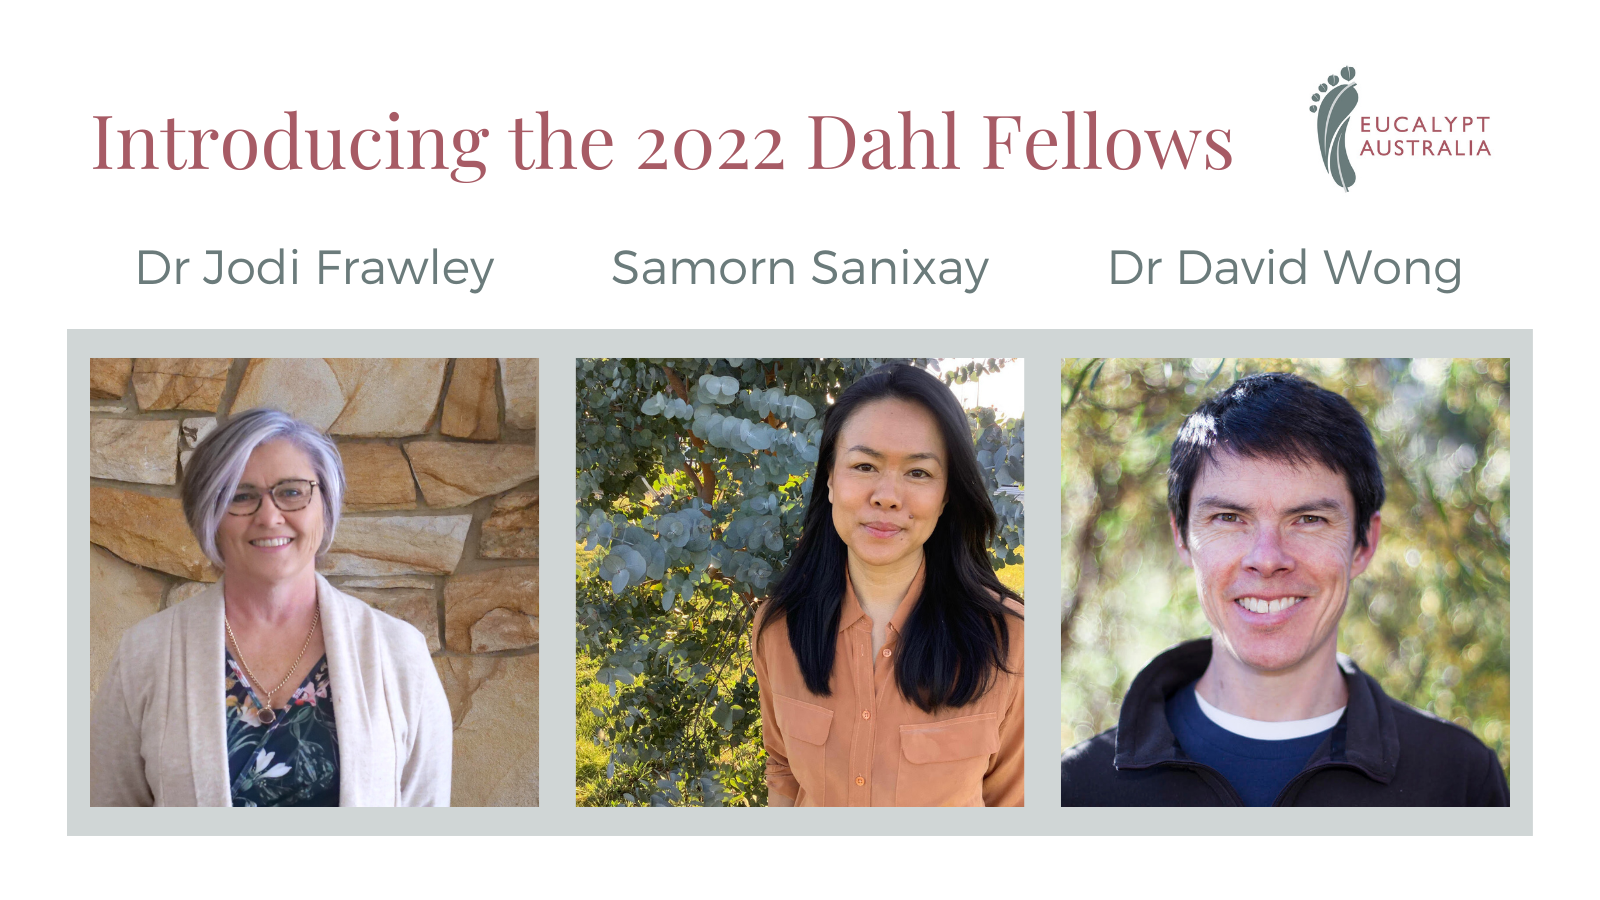 The Board Of Eucalypt Australia Is Delighted To Announce The 2022 Dahl Fellowships.